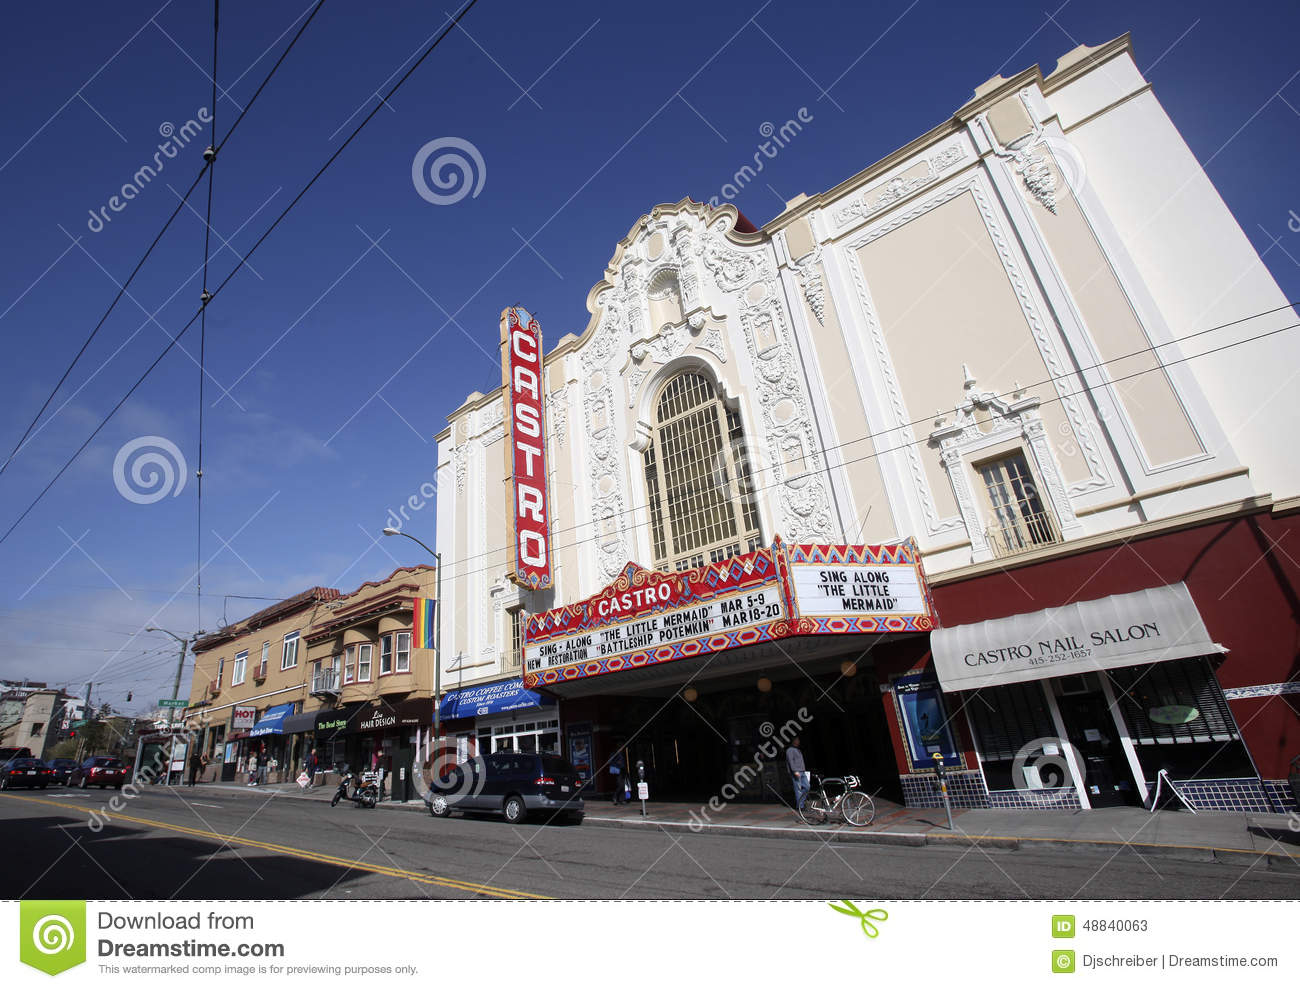 castro theatre, san francisco editorial stock photo - image of